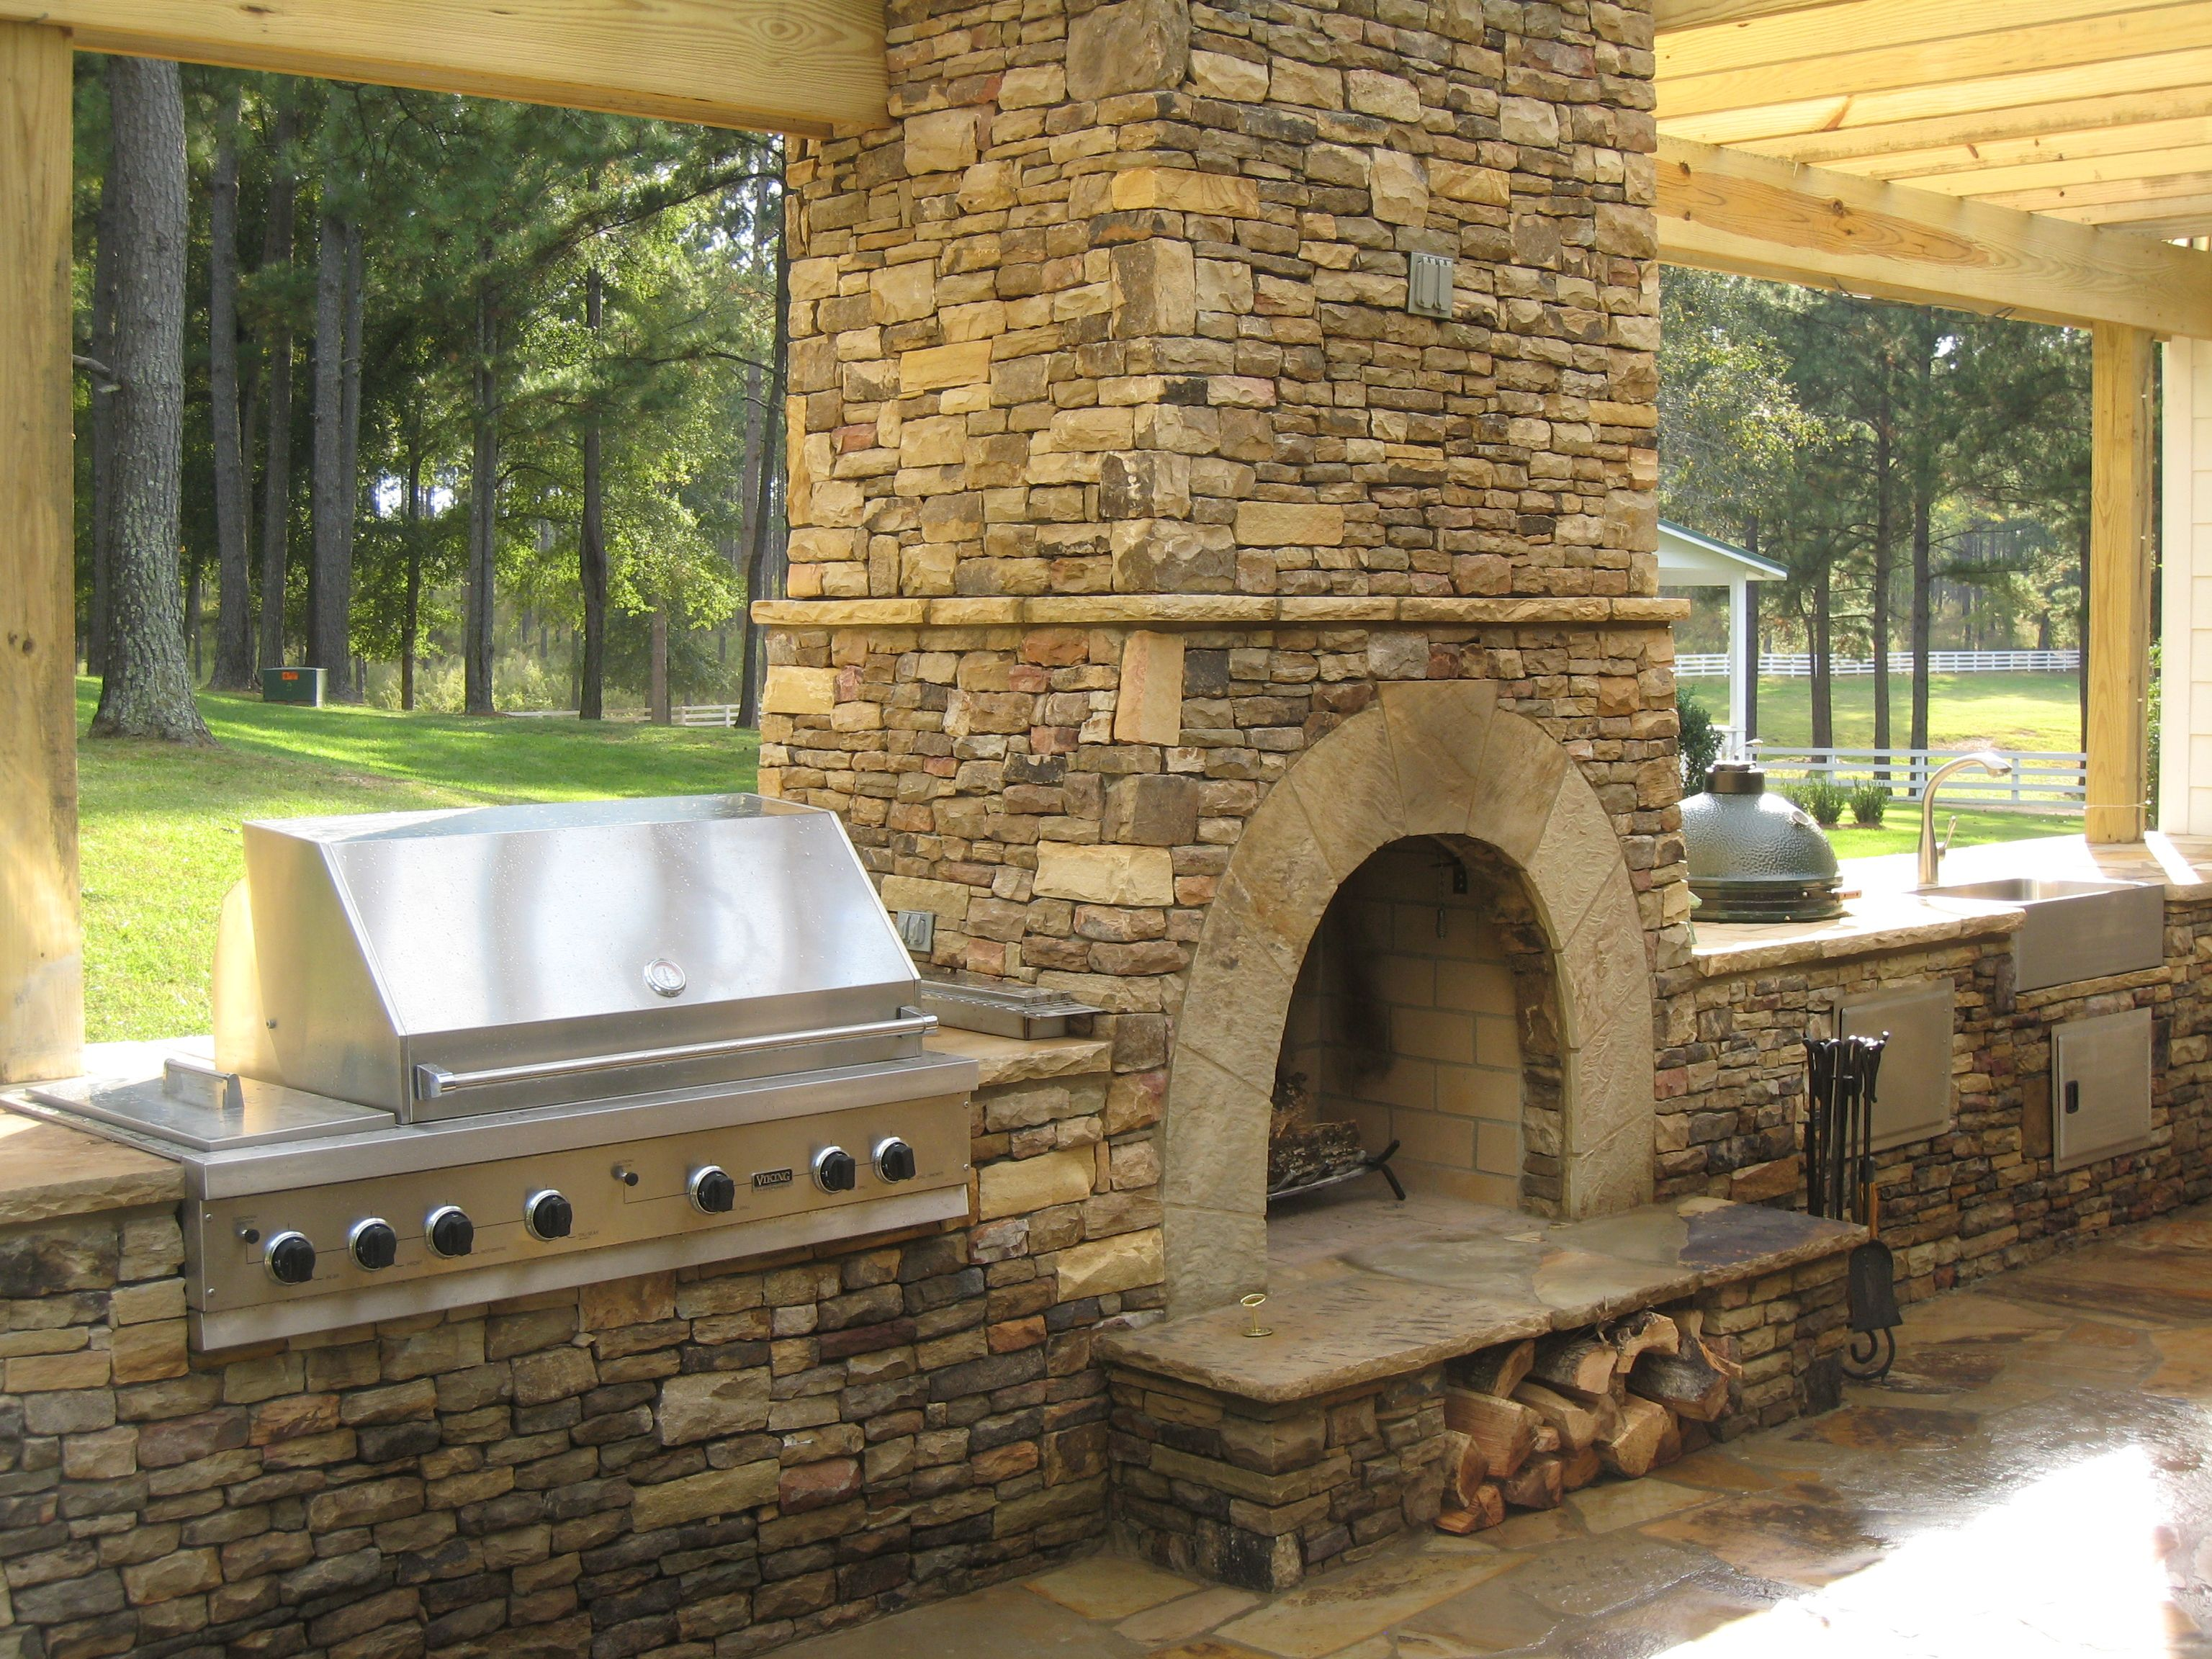 Amazing outdoor fireplace designs part 1 patio grill - How to build an outdoor kitchen a practical terrace ...